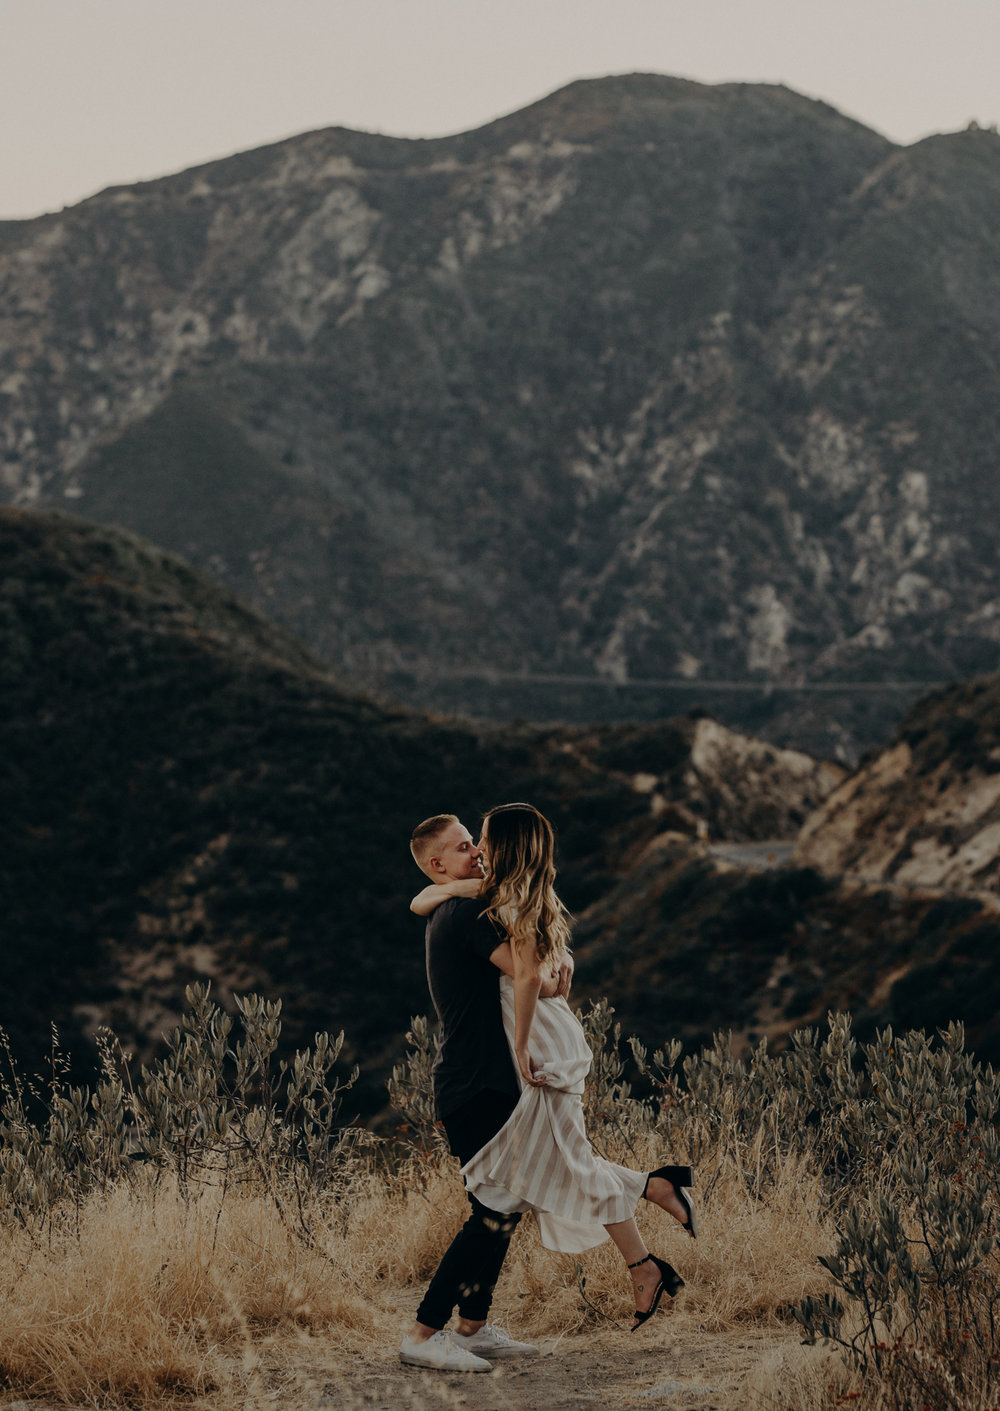 Isaiah + Taylor Photography - Los Angeles Forest Engagement Session - Laid back wedding photographer-021.jpg